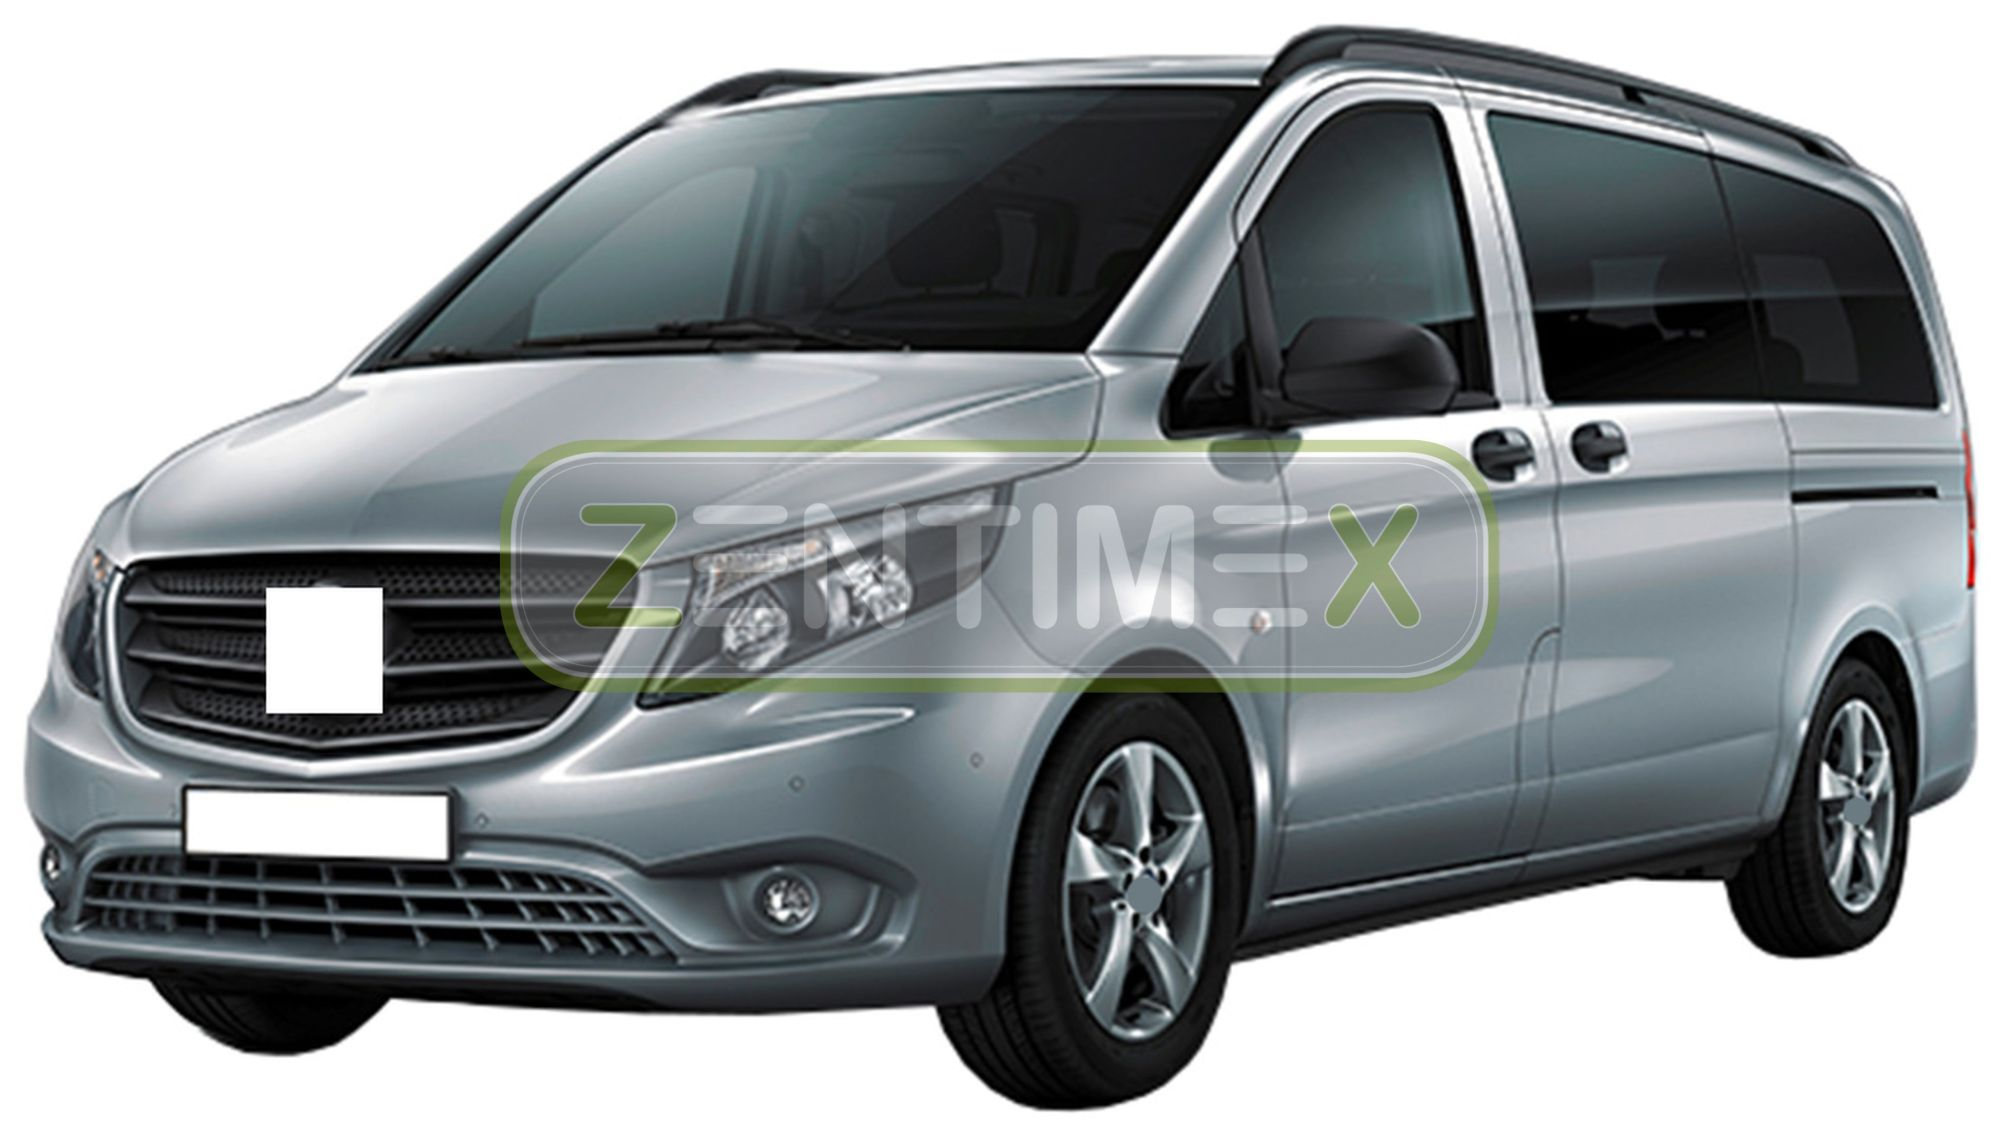 Mercedes Vito Tourer Details About Rubberised Boot Mat Trunk Liner For Mercedes Vito Tourer Long Version Extra Long